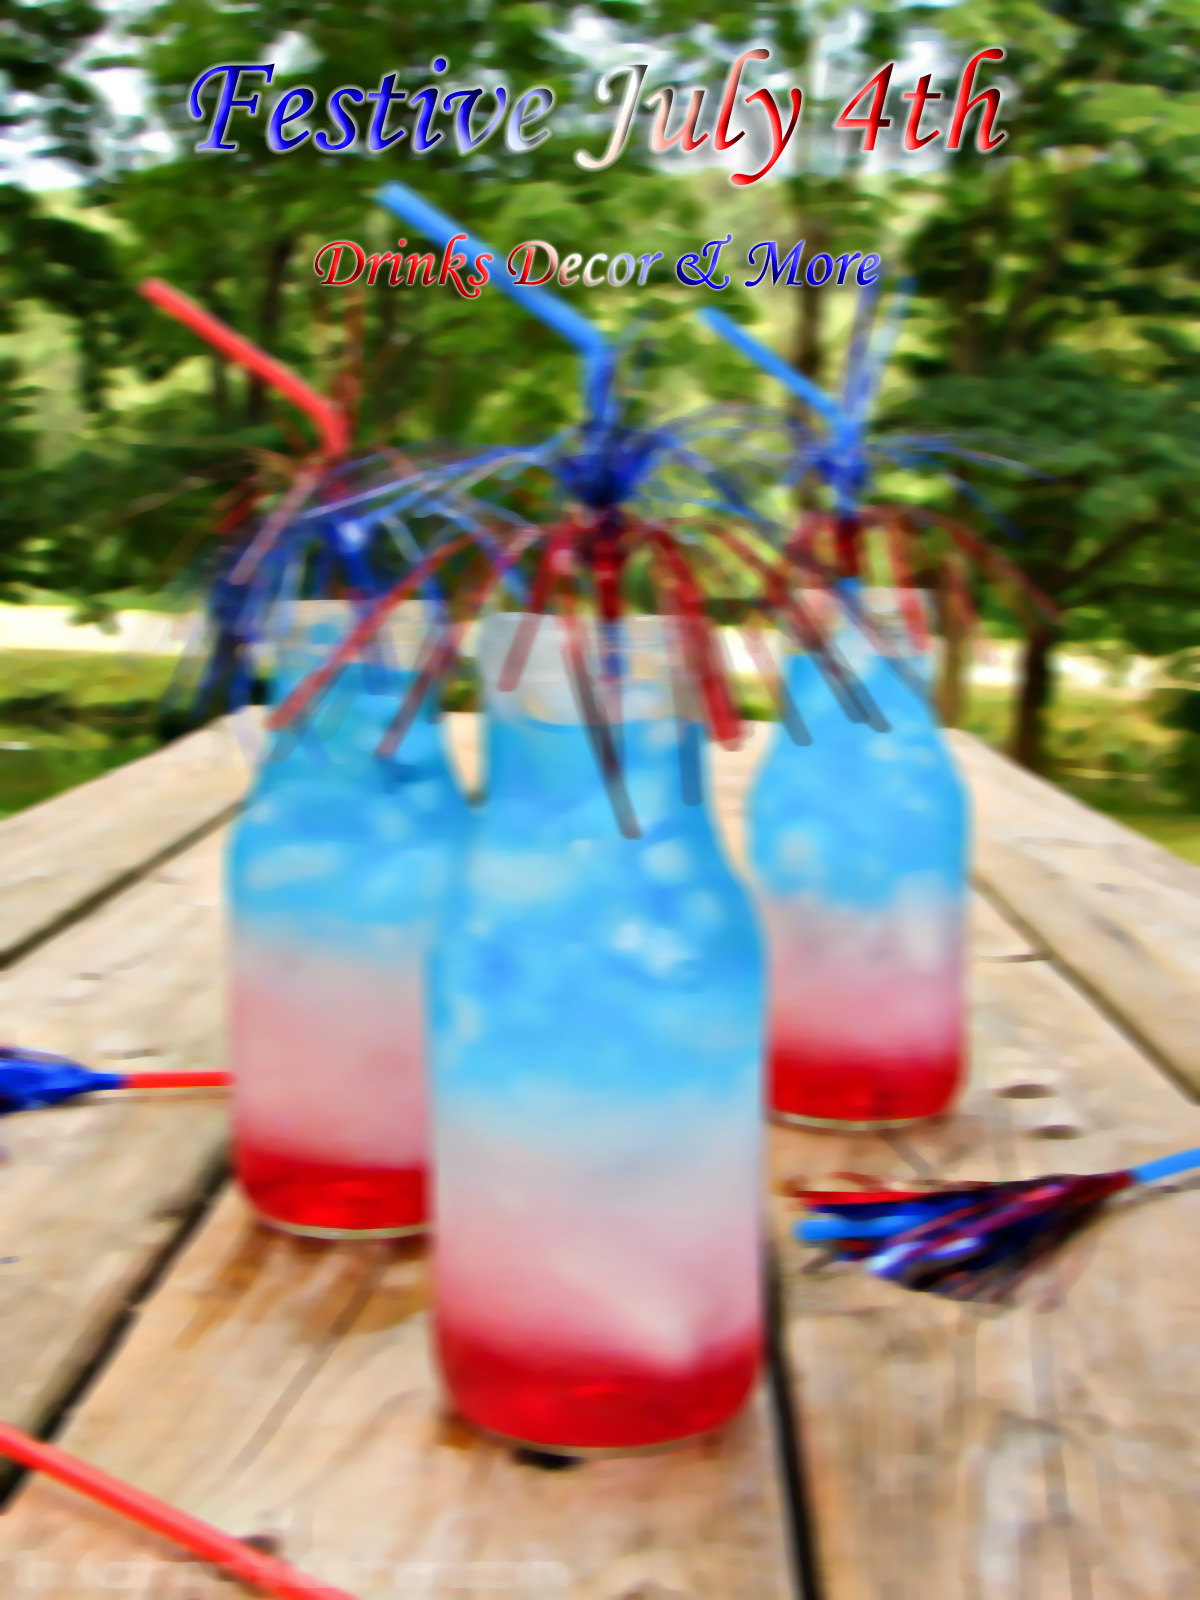 Looking to make your 4th a little more exciting? Here are some examples of drinks, desserts, decor & more to get your party started